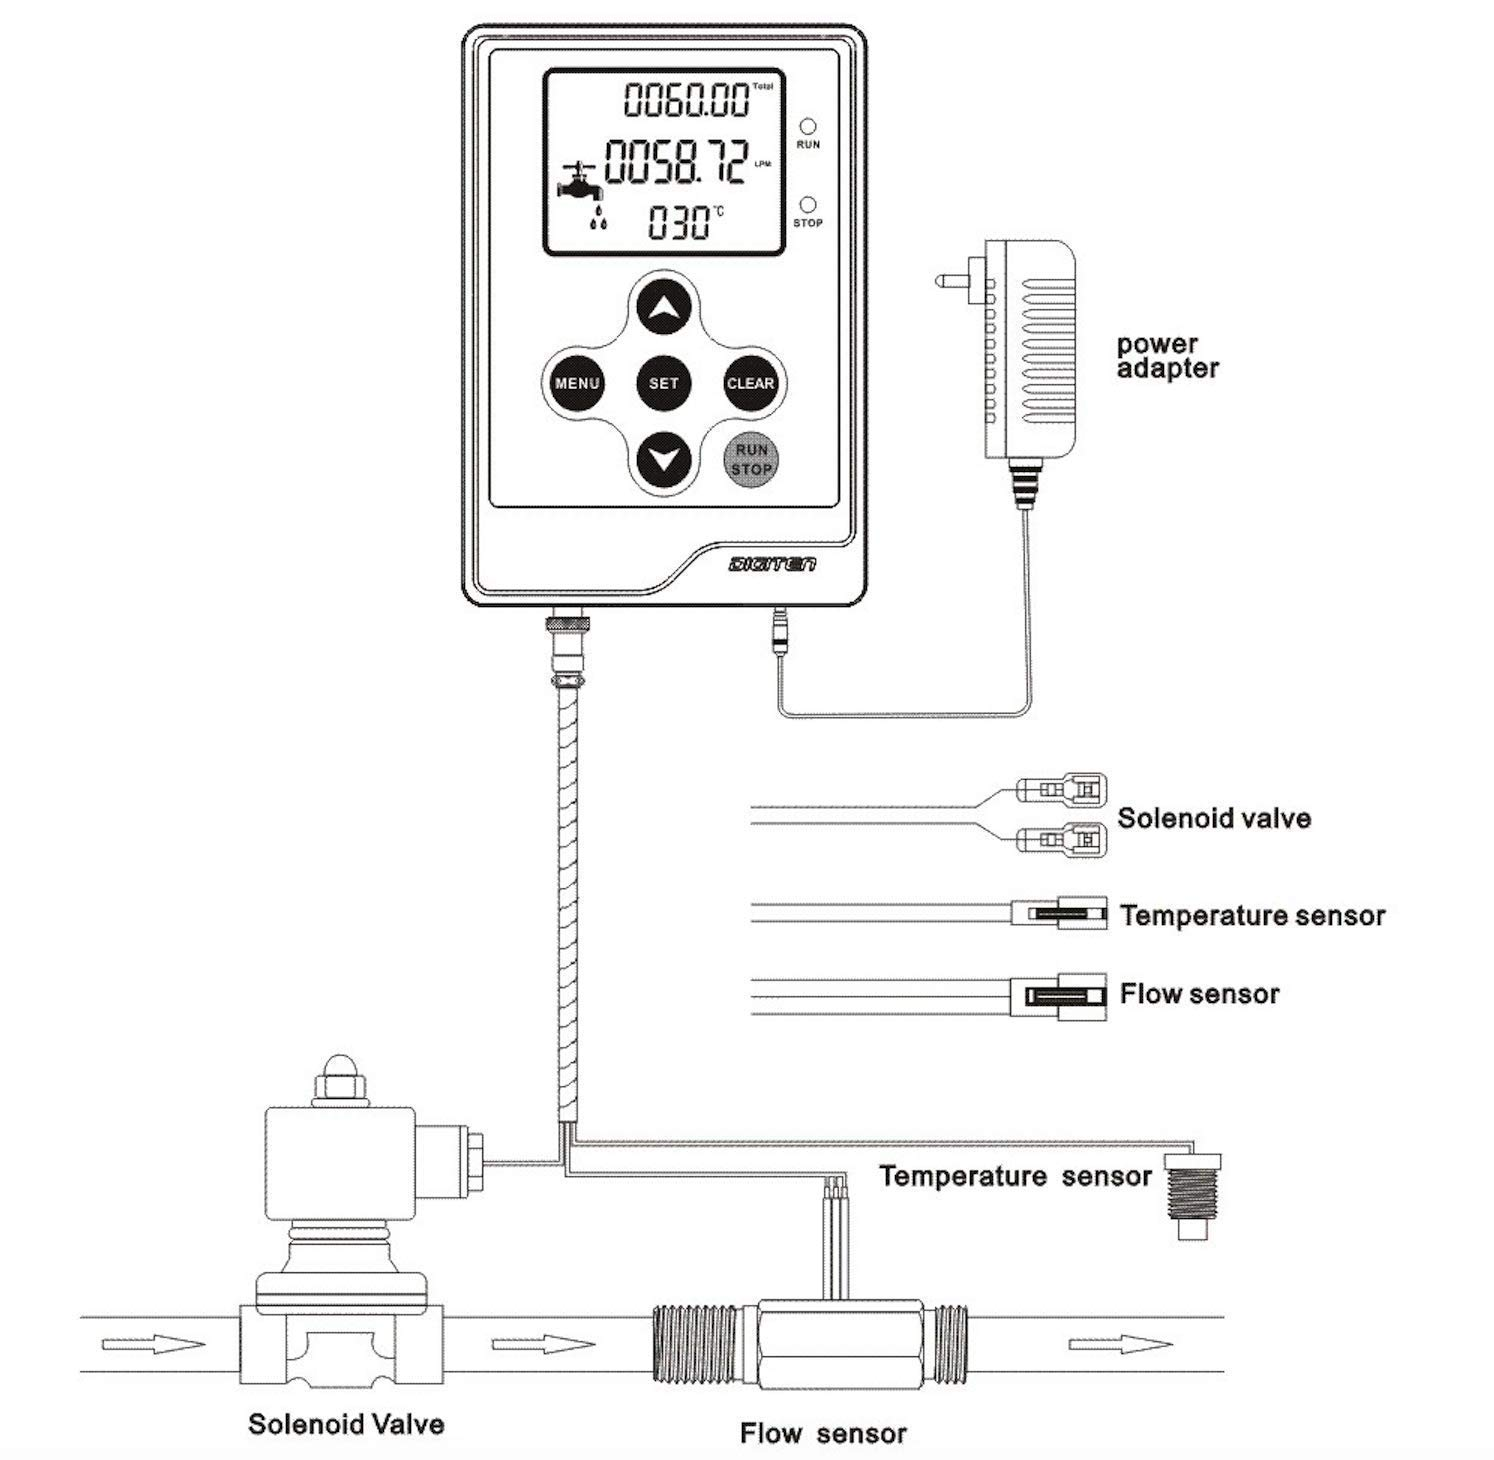 DIGITEN LCD Display Water Flow Control Meter Liquid Quantitative Controller + G2'' 2 inch Water Flow Hall Sensor Switch Meter Flowmeter Control 10-200L/min + DC 12V Power Adapter